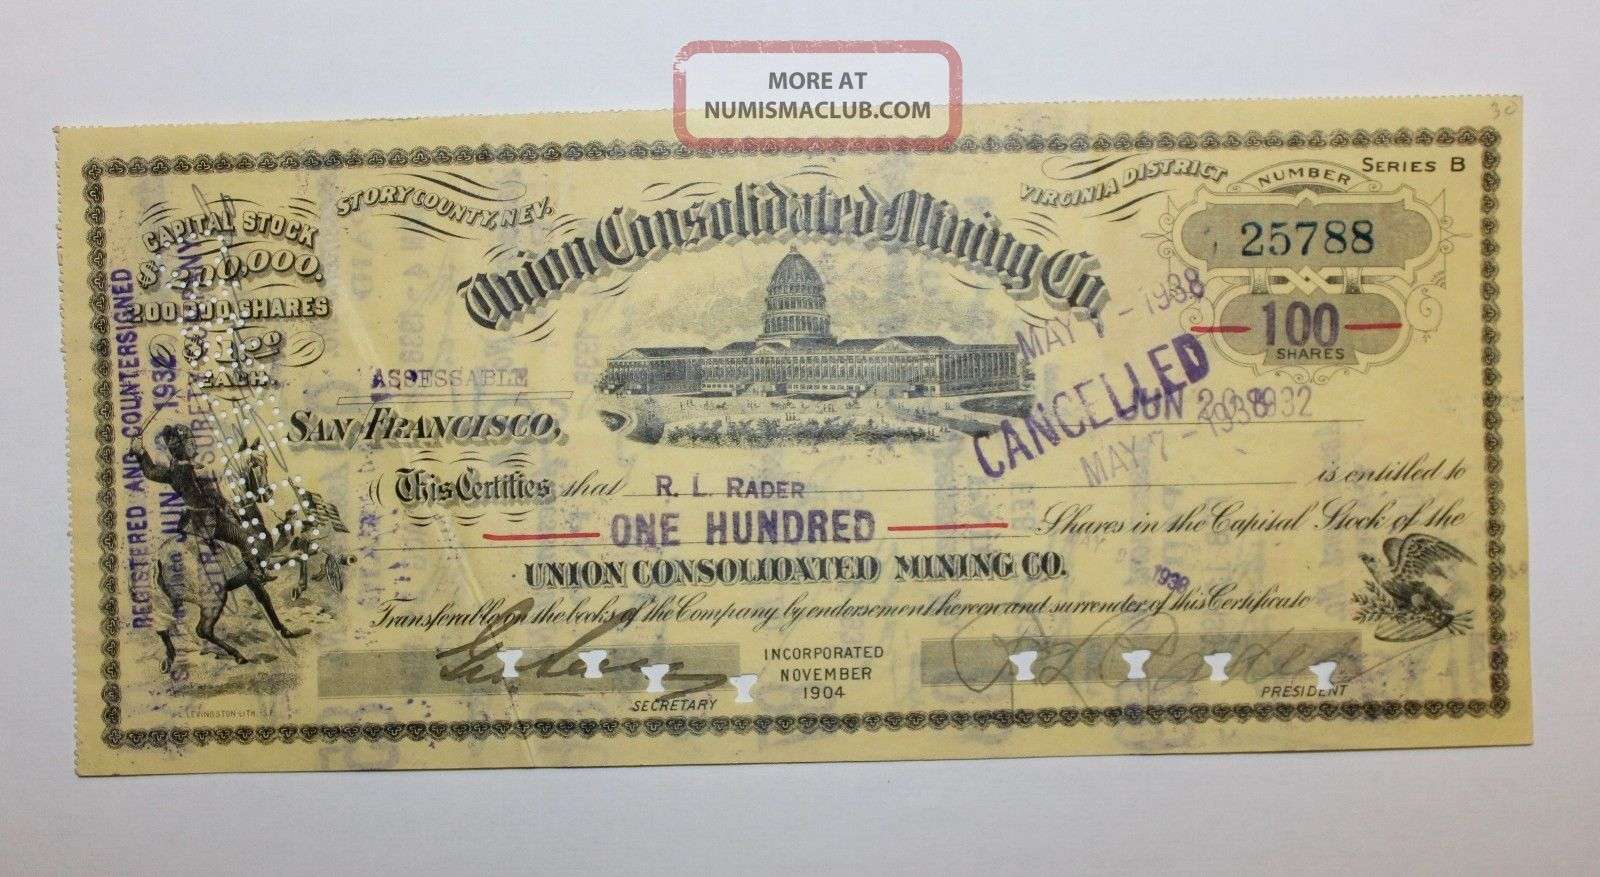 1932 Union Consolidated Mining Co.  Stock Certificate Virginia District,  Nevada Stocks & Bonds, Scripophily photo